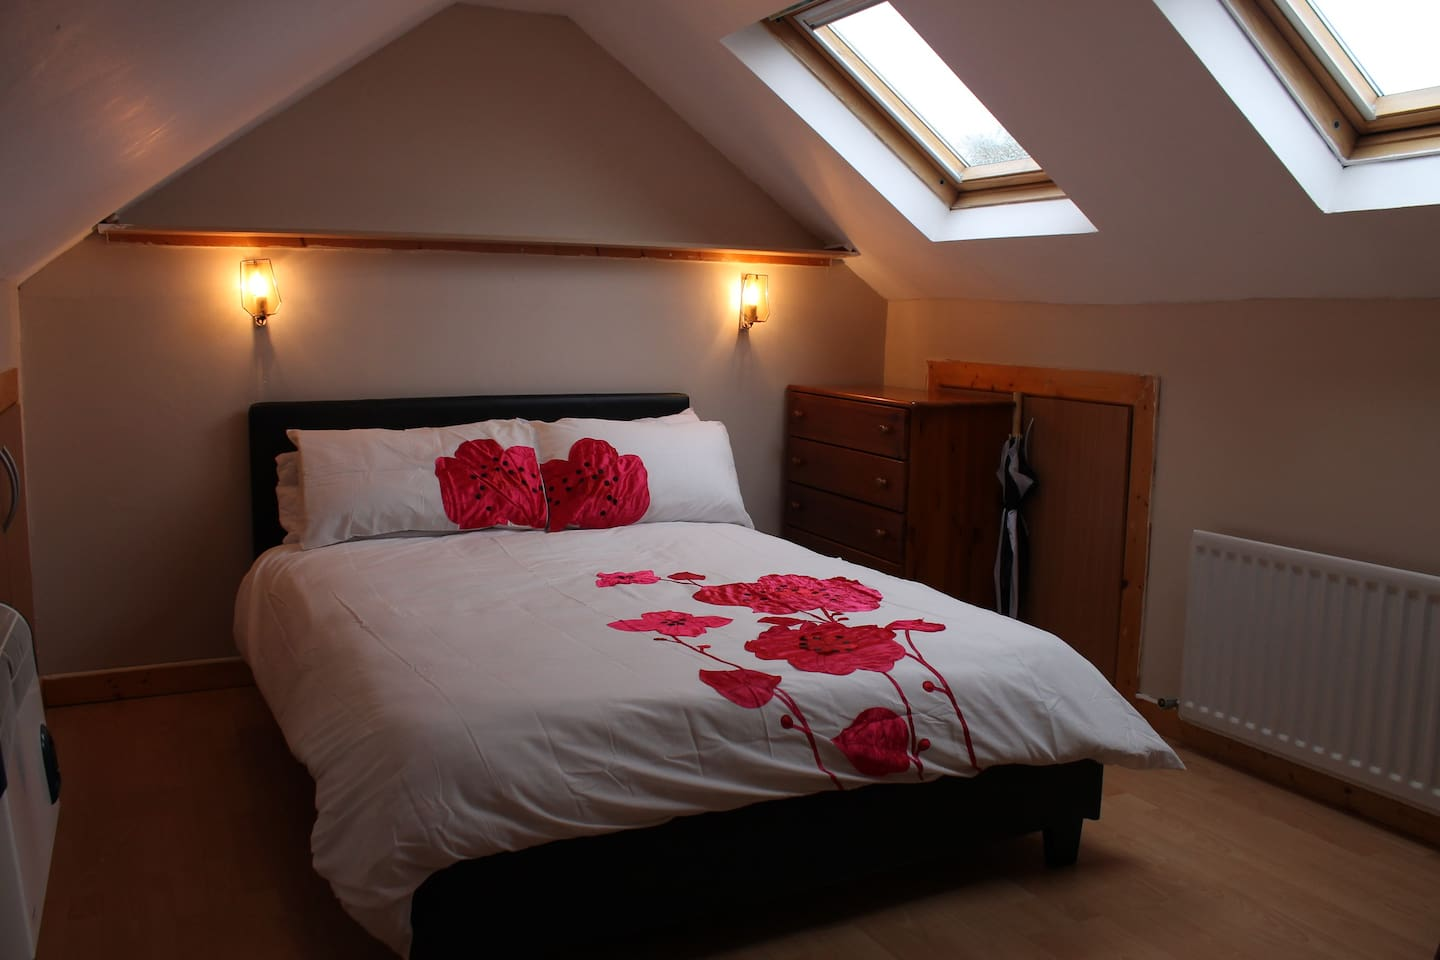 Lovely double room in the attic